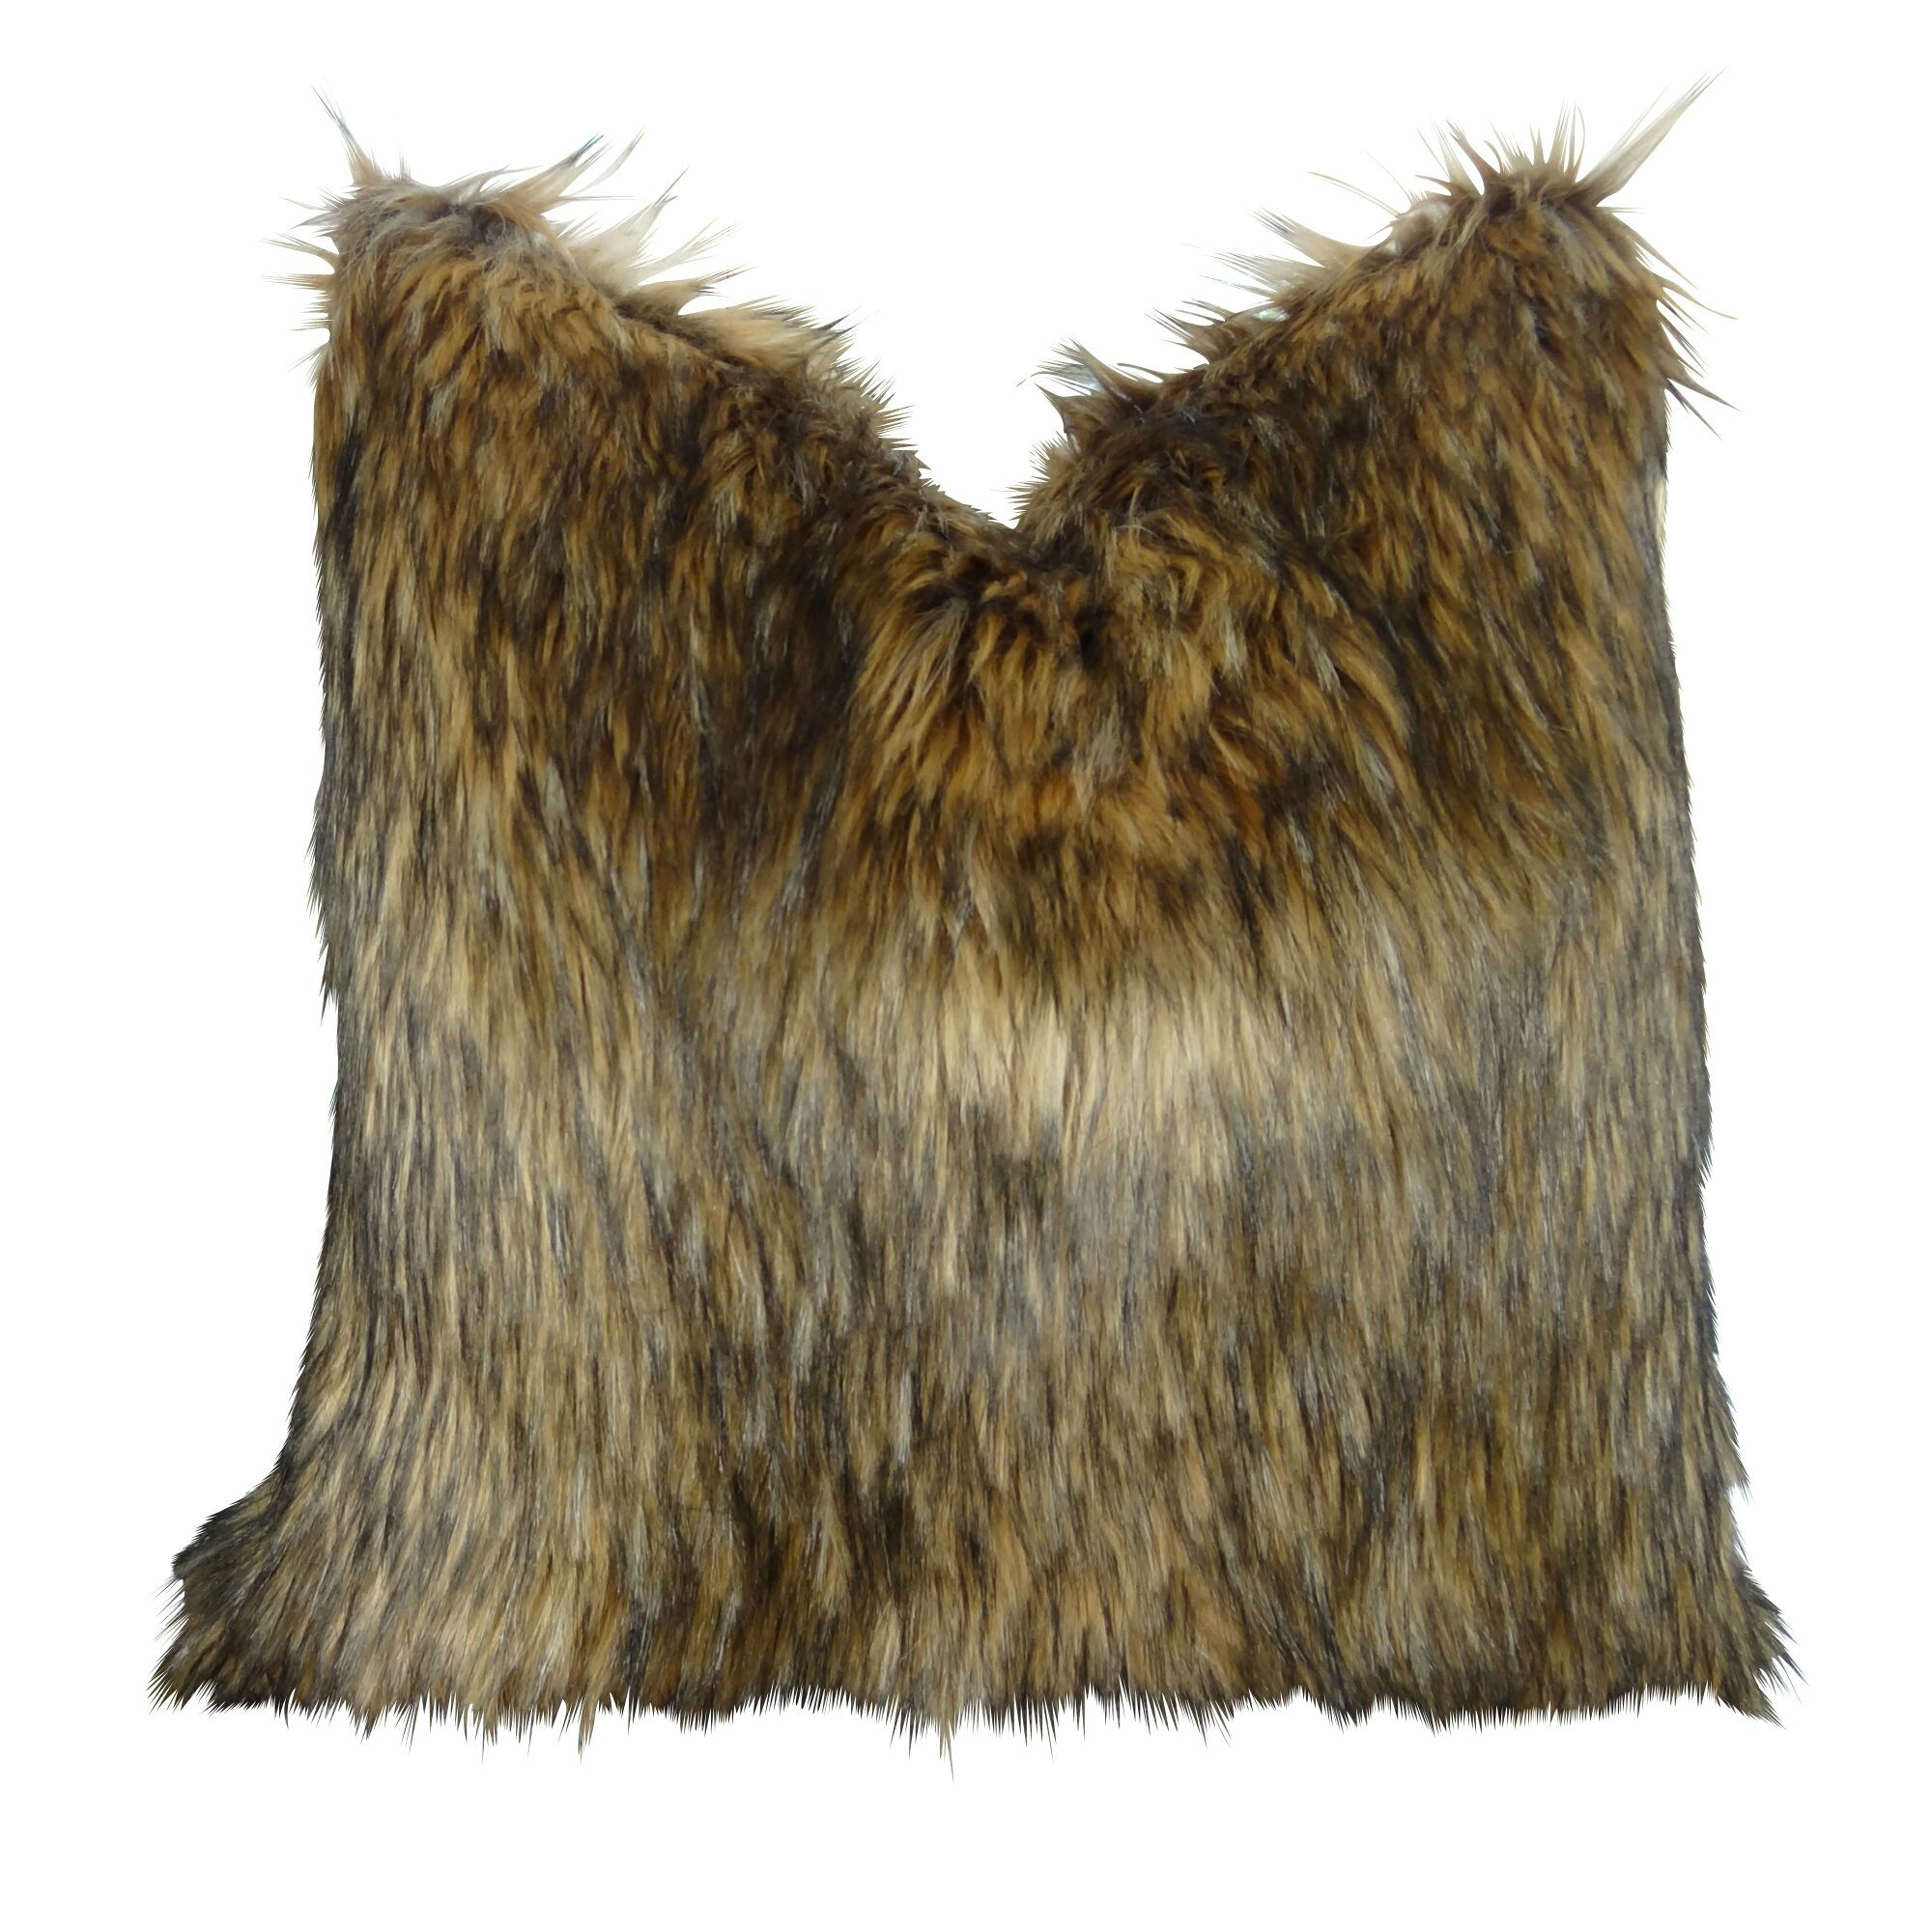 Wafford Wolf Luxury Faux Fur Pillow Fill Material: Cover Only - No Insert, Size: 12